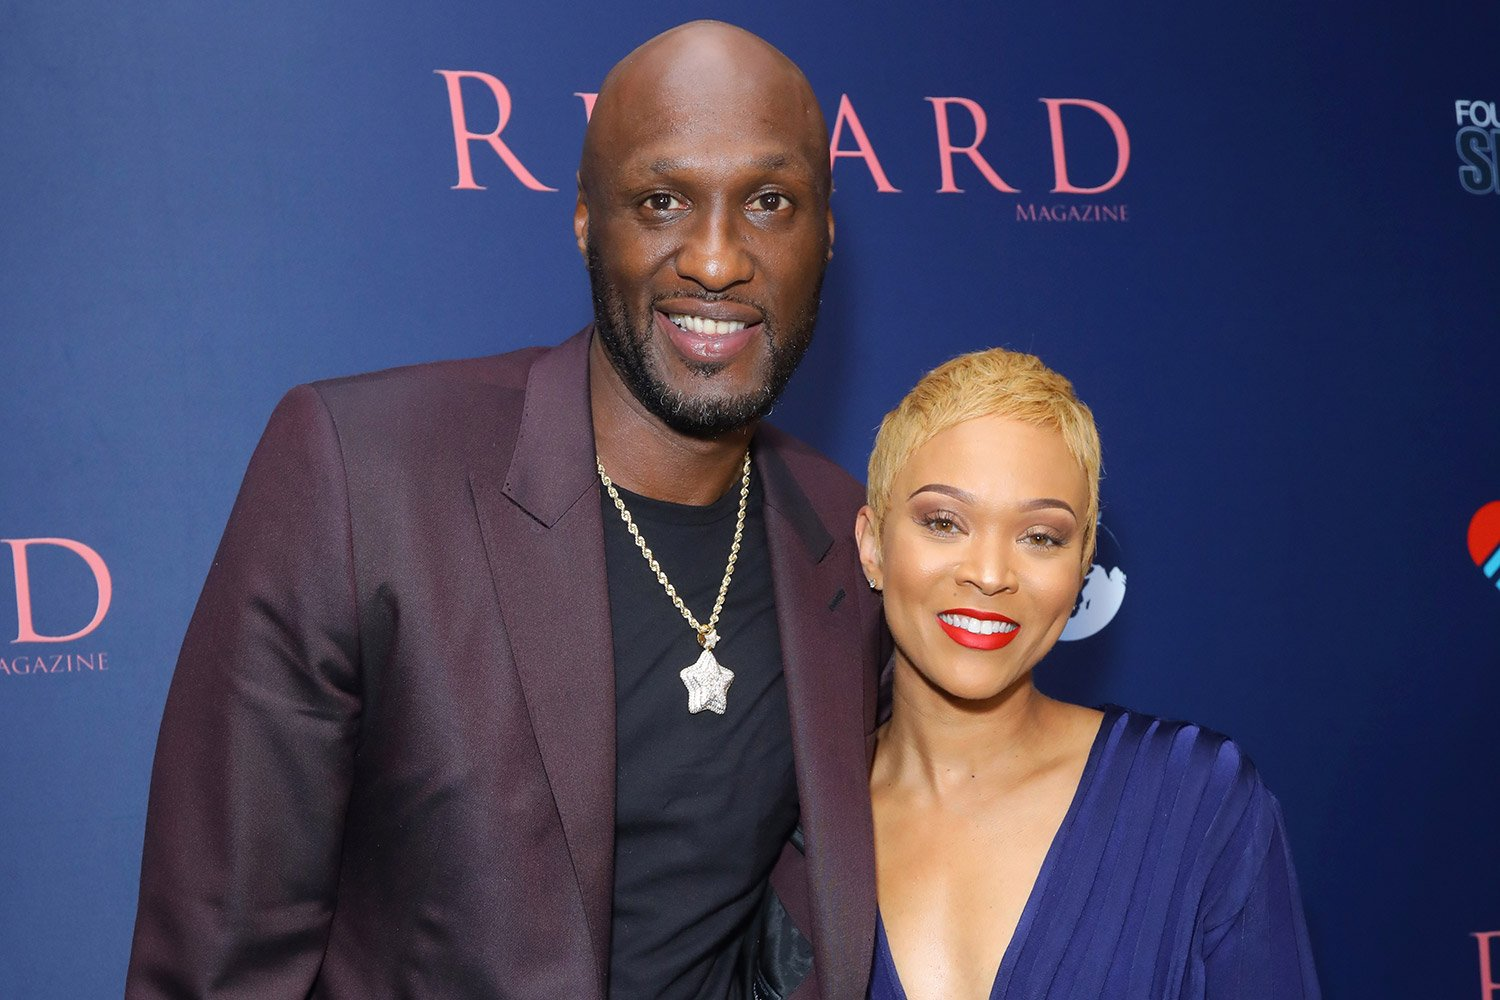 Lamar Odom Reveals He Cheated On Sabrina Parr And Confrims She Hooked Up With Tristan Thompson!